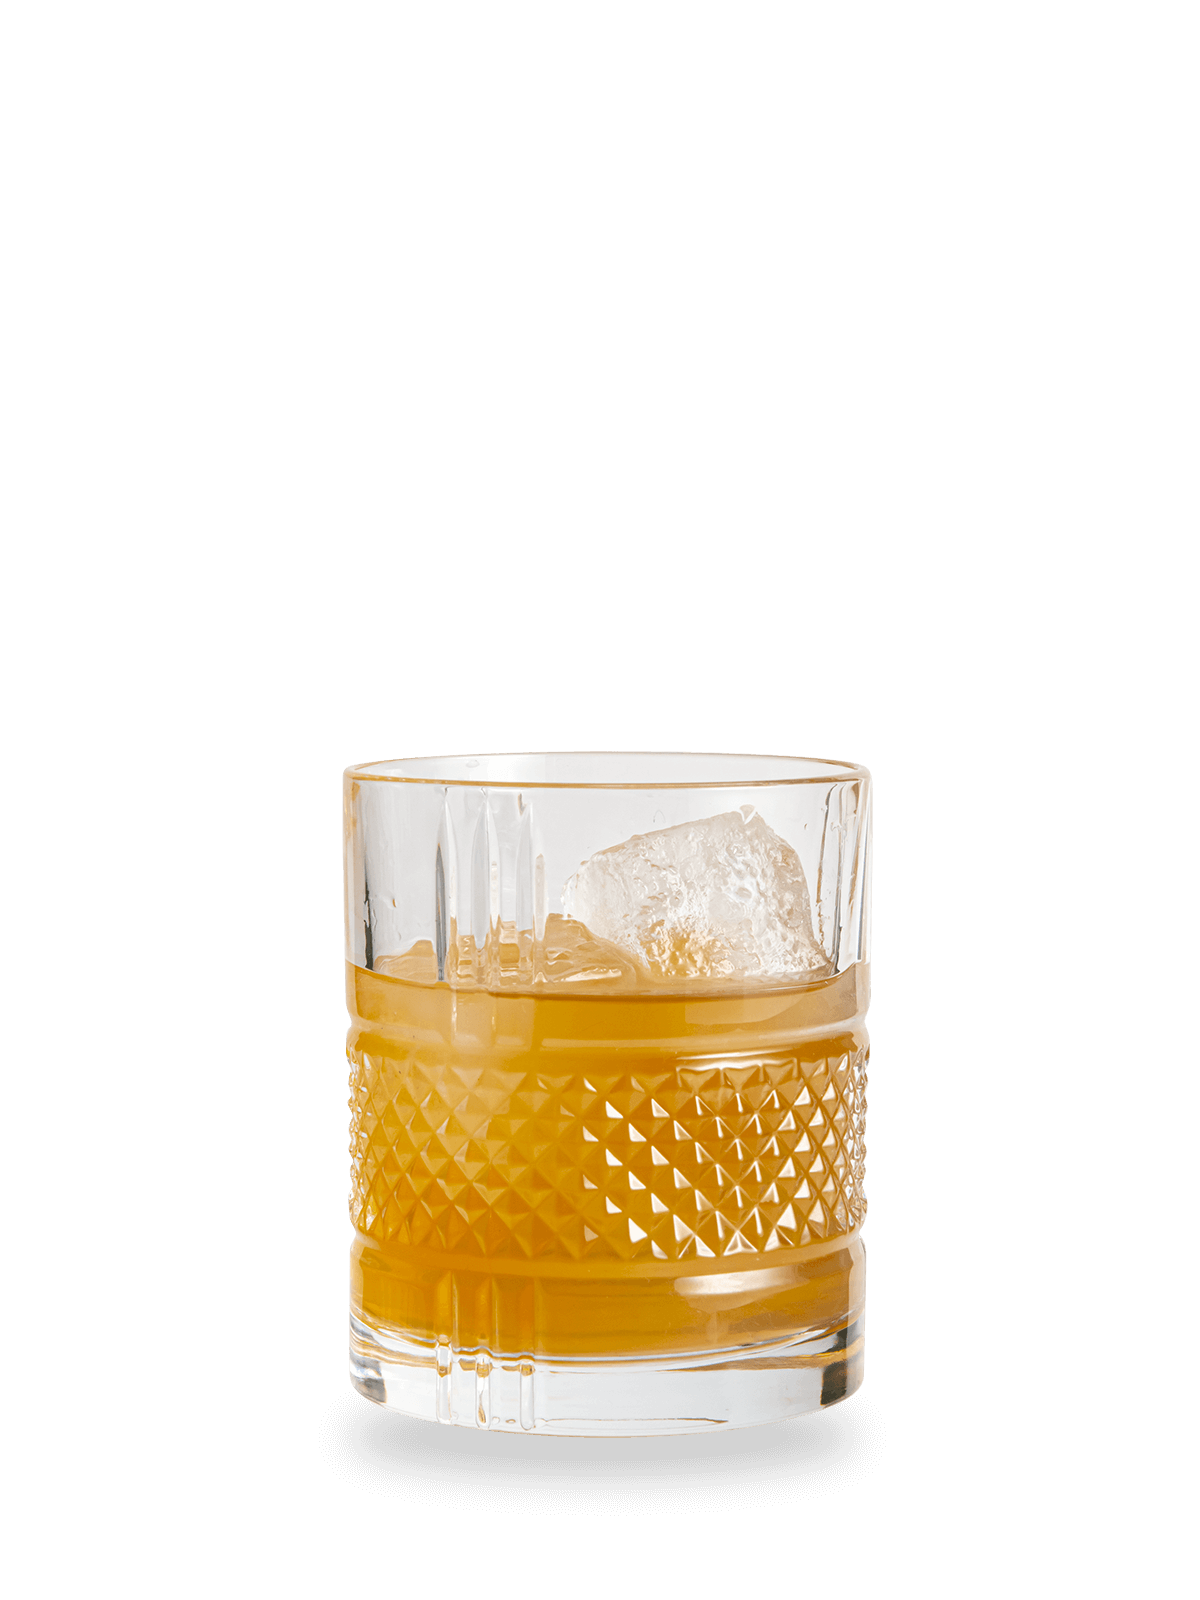 Rezept Rum Cocktail B2B Rum Old Fashioneded aus der Bar Wagemut